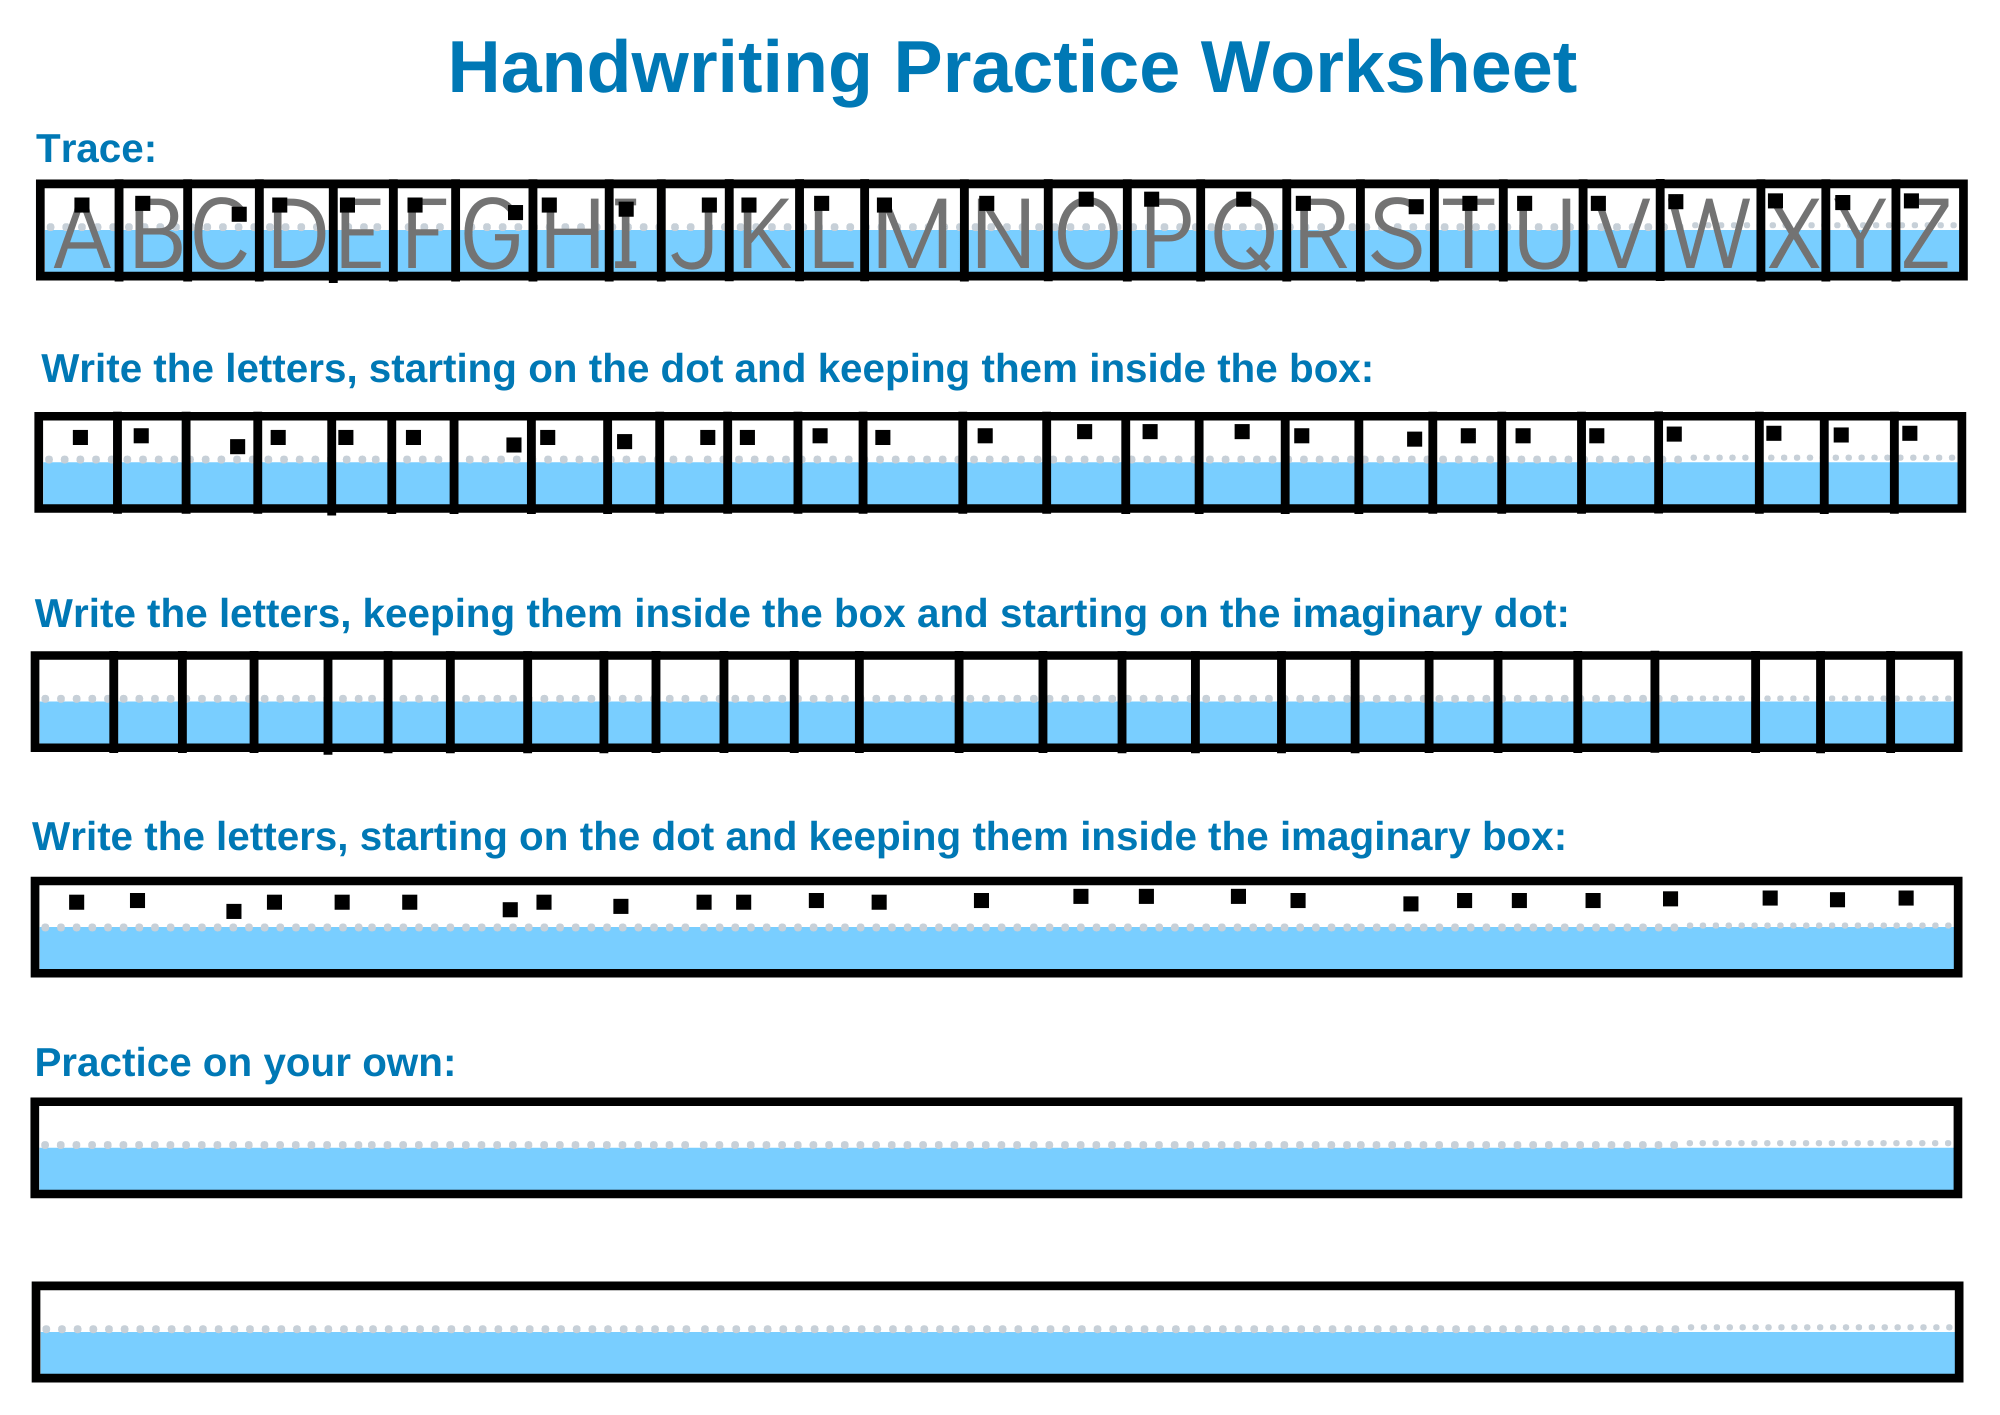 Occupational Therapy Handwriting Practice Worksheet